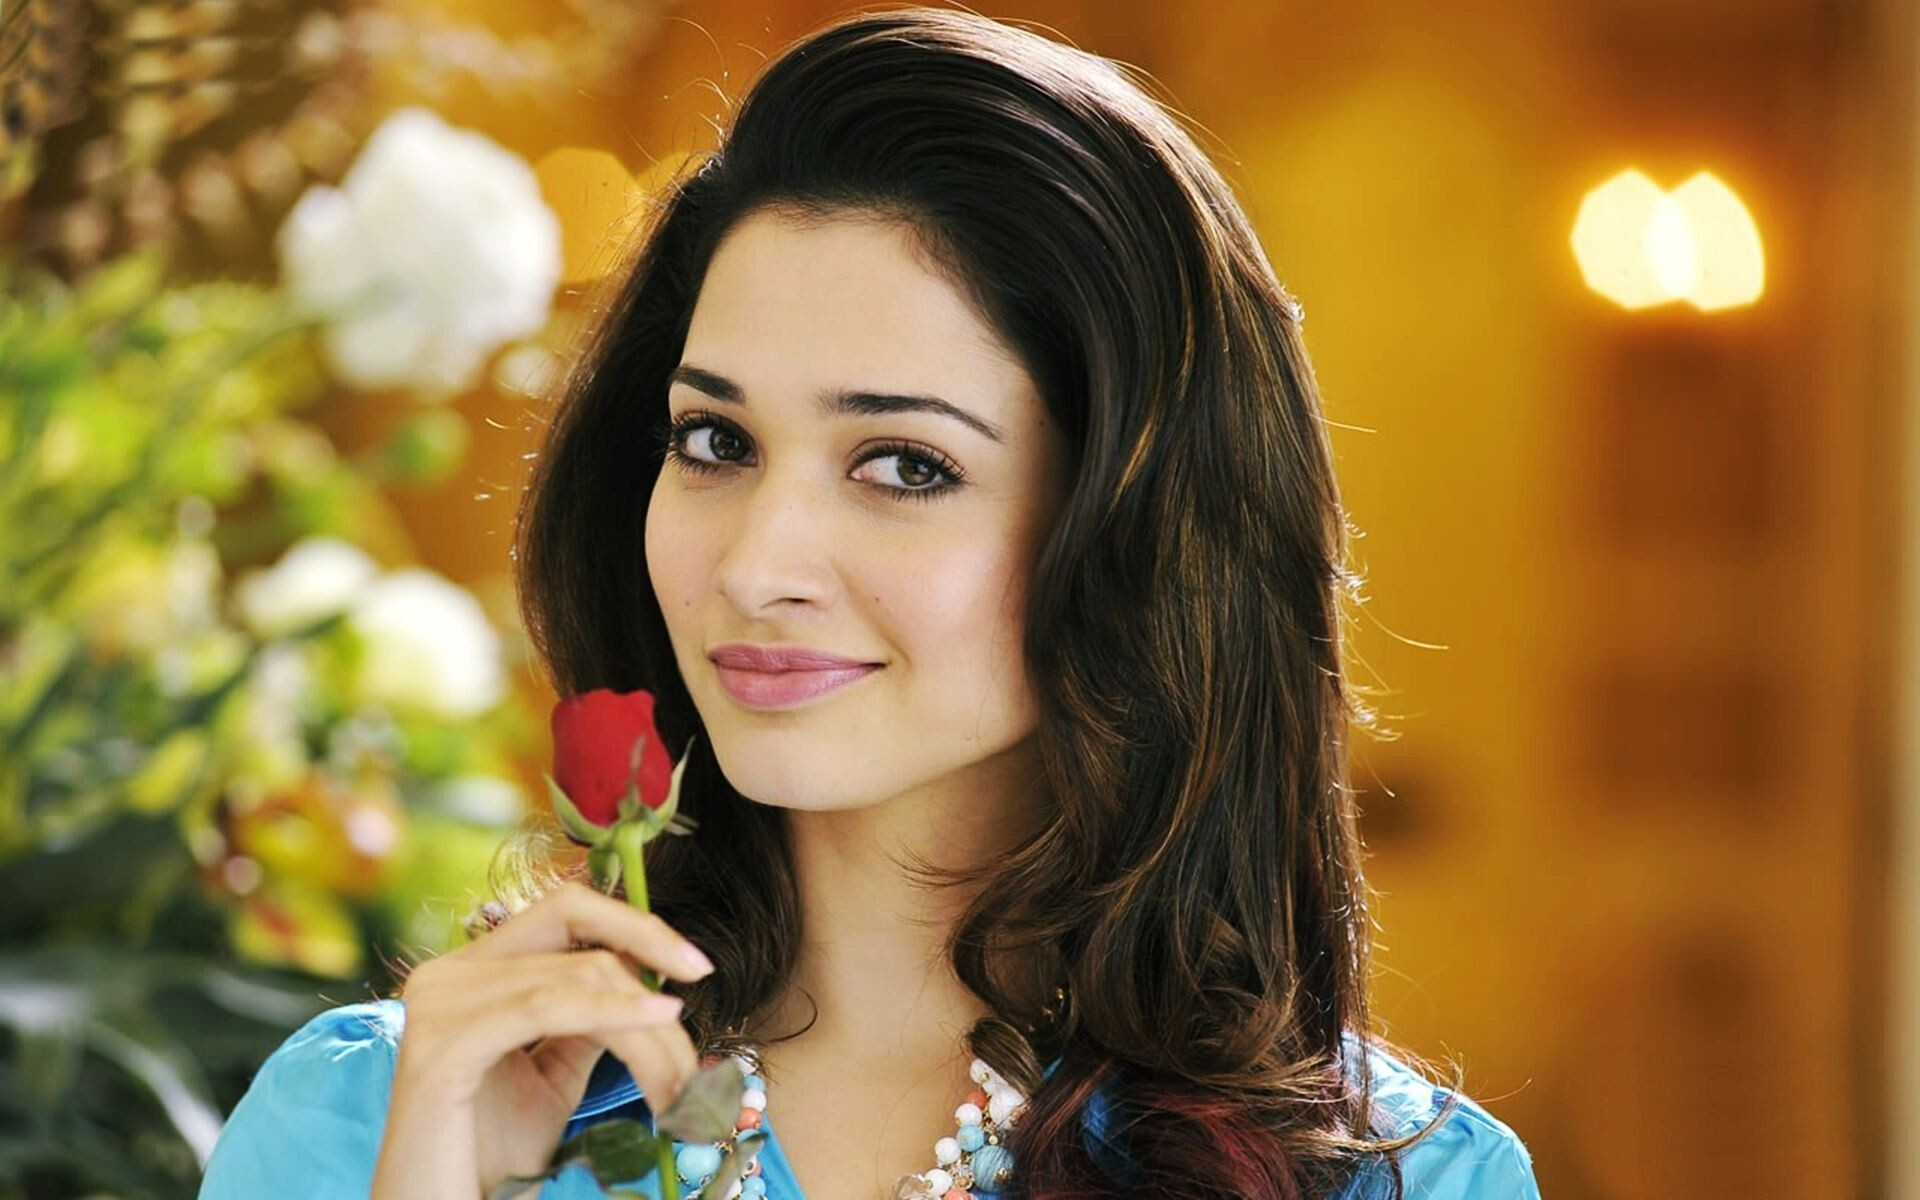 Wallpaper download heroine - Tamannaah Bhatia Indian Actress Hd Wallpapers